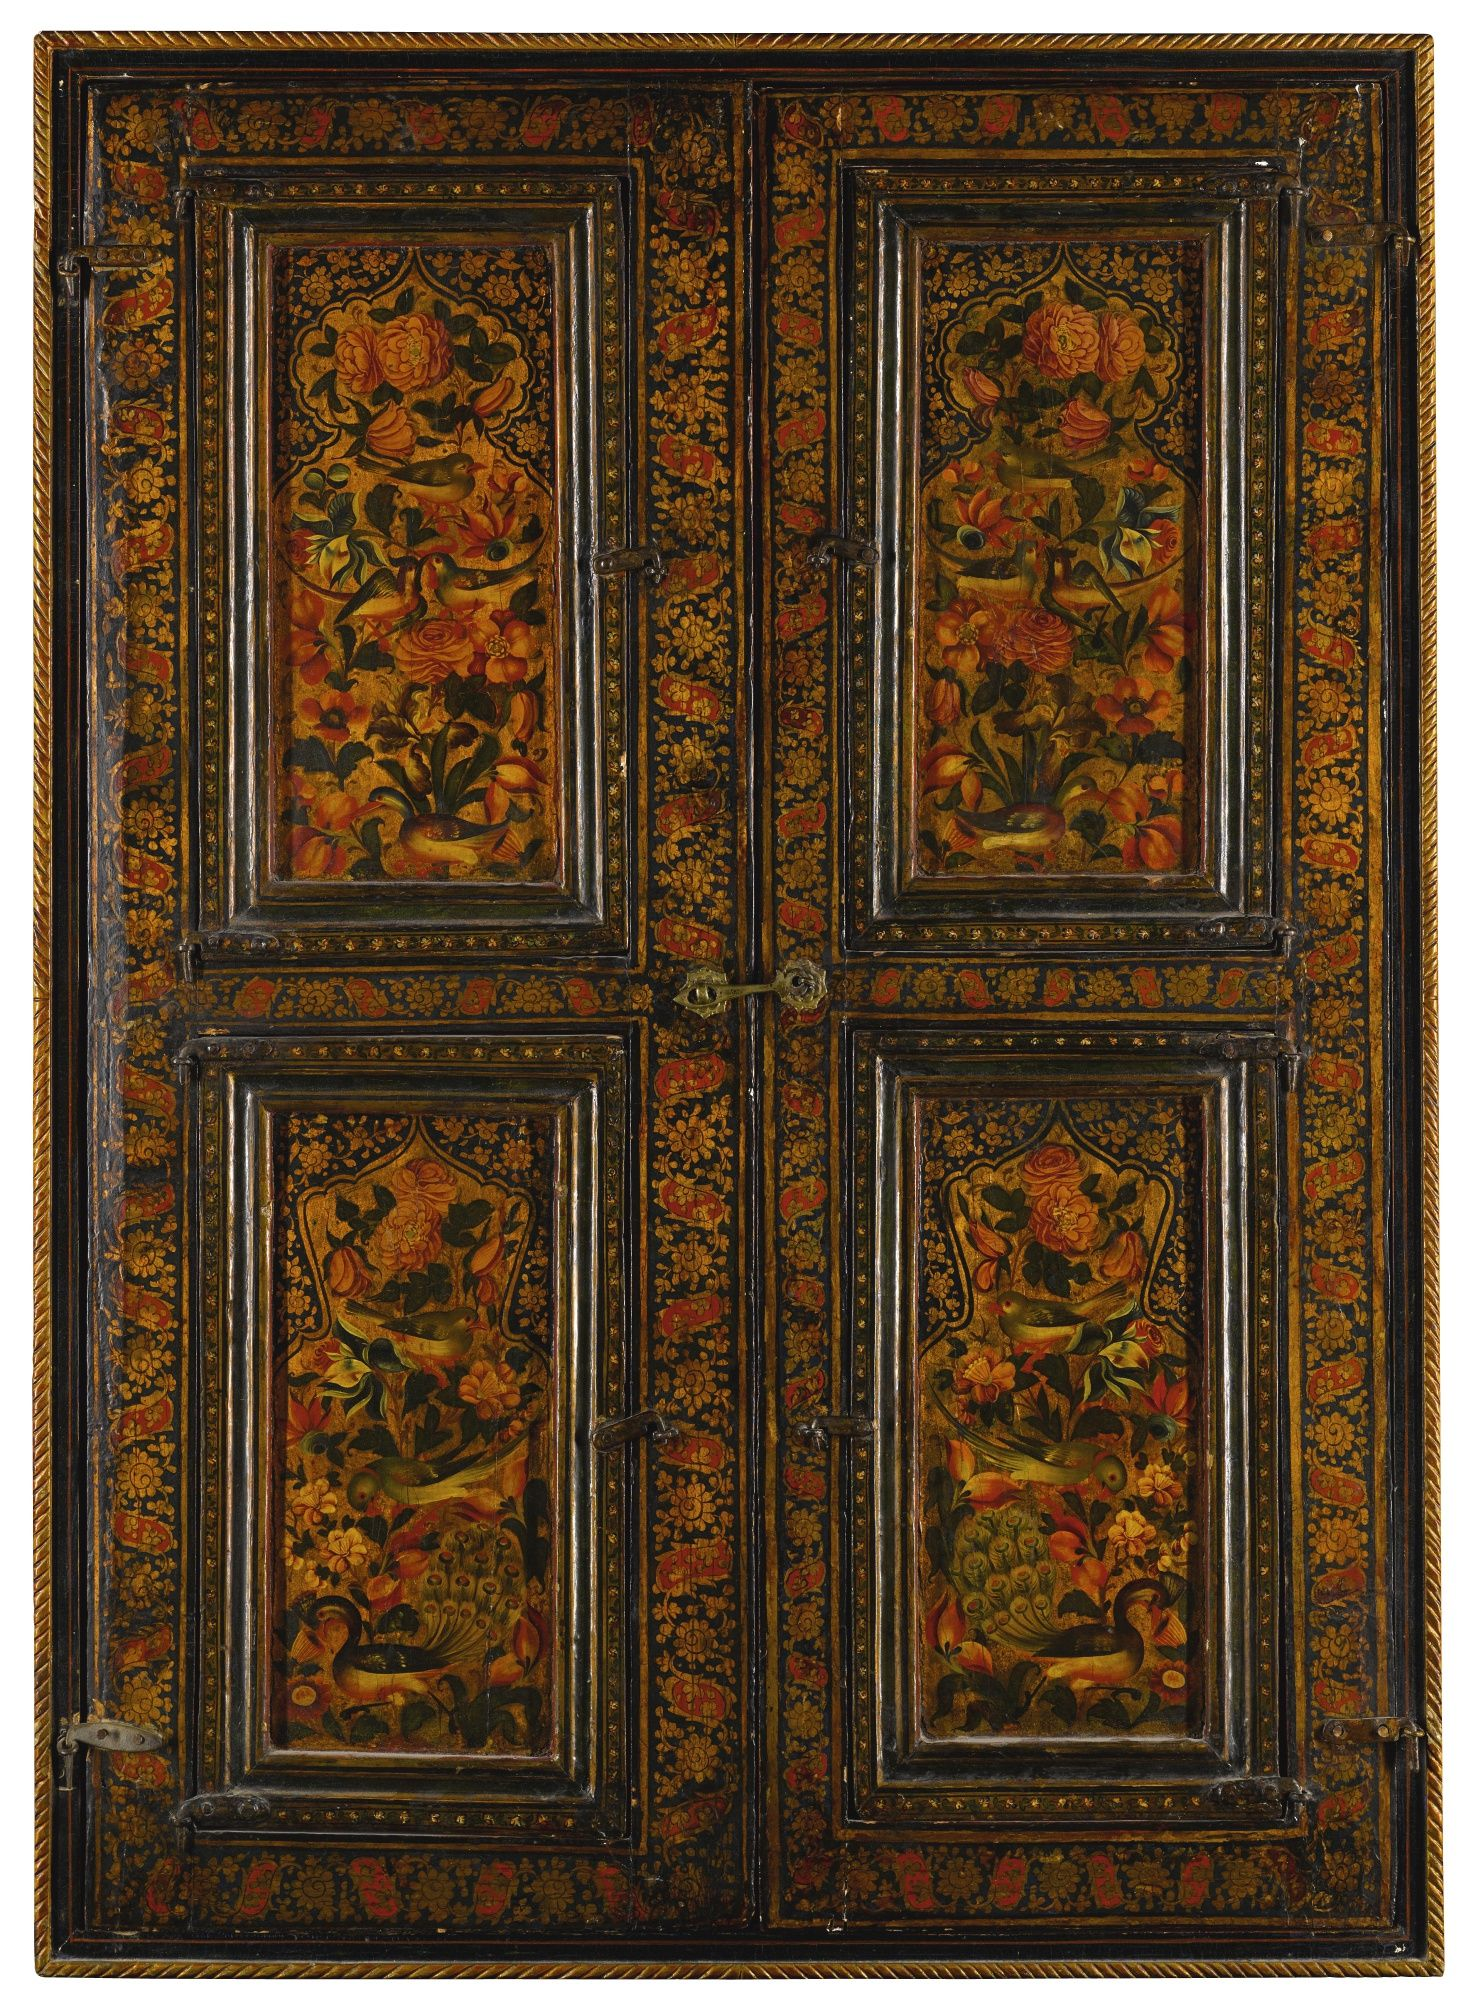 A Qajar lacquered and mirrored window frame, Persia, 19th century ...